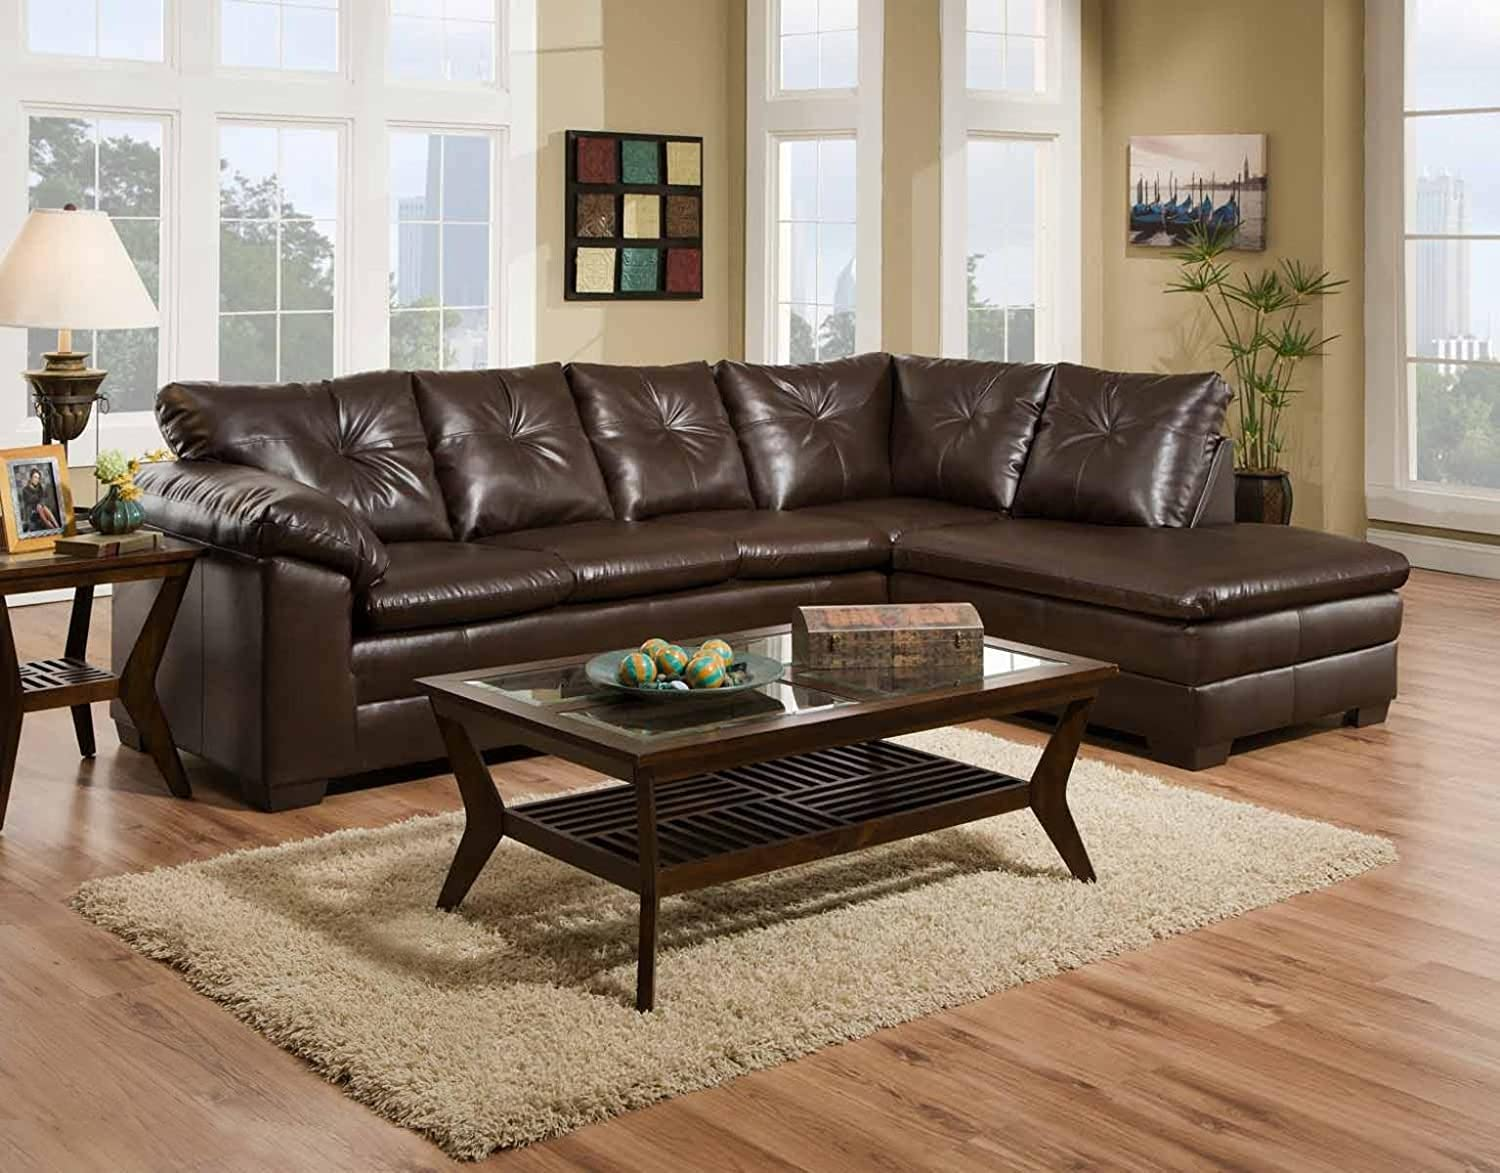 Chelsea Home Furniture Rho 2-Piece Sectional - Freeport Brown